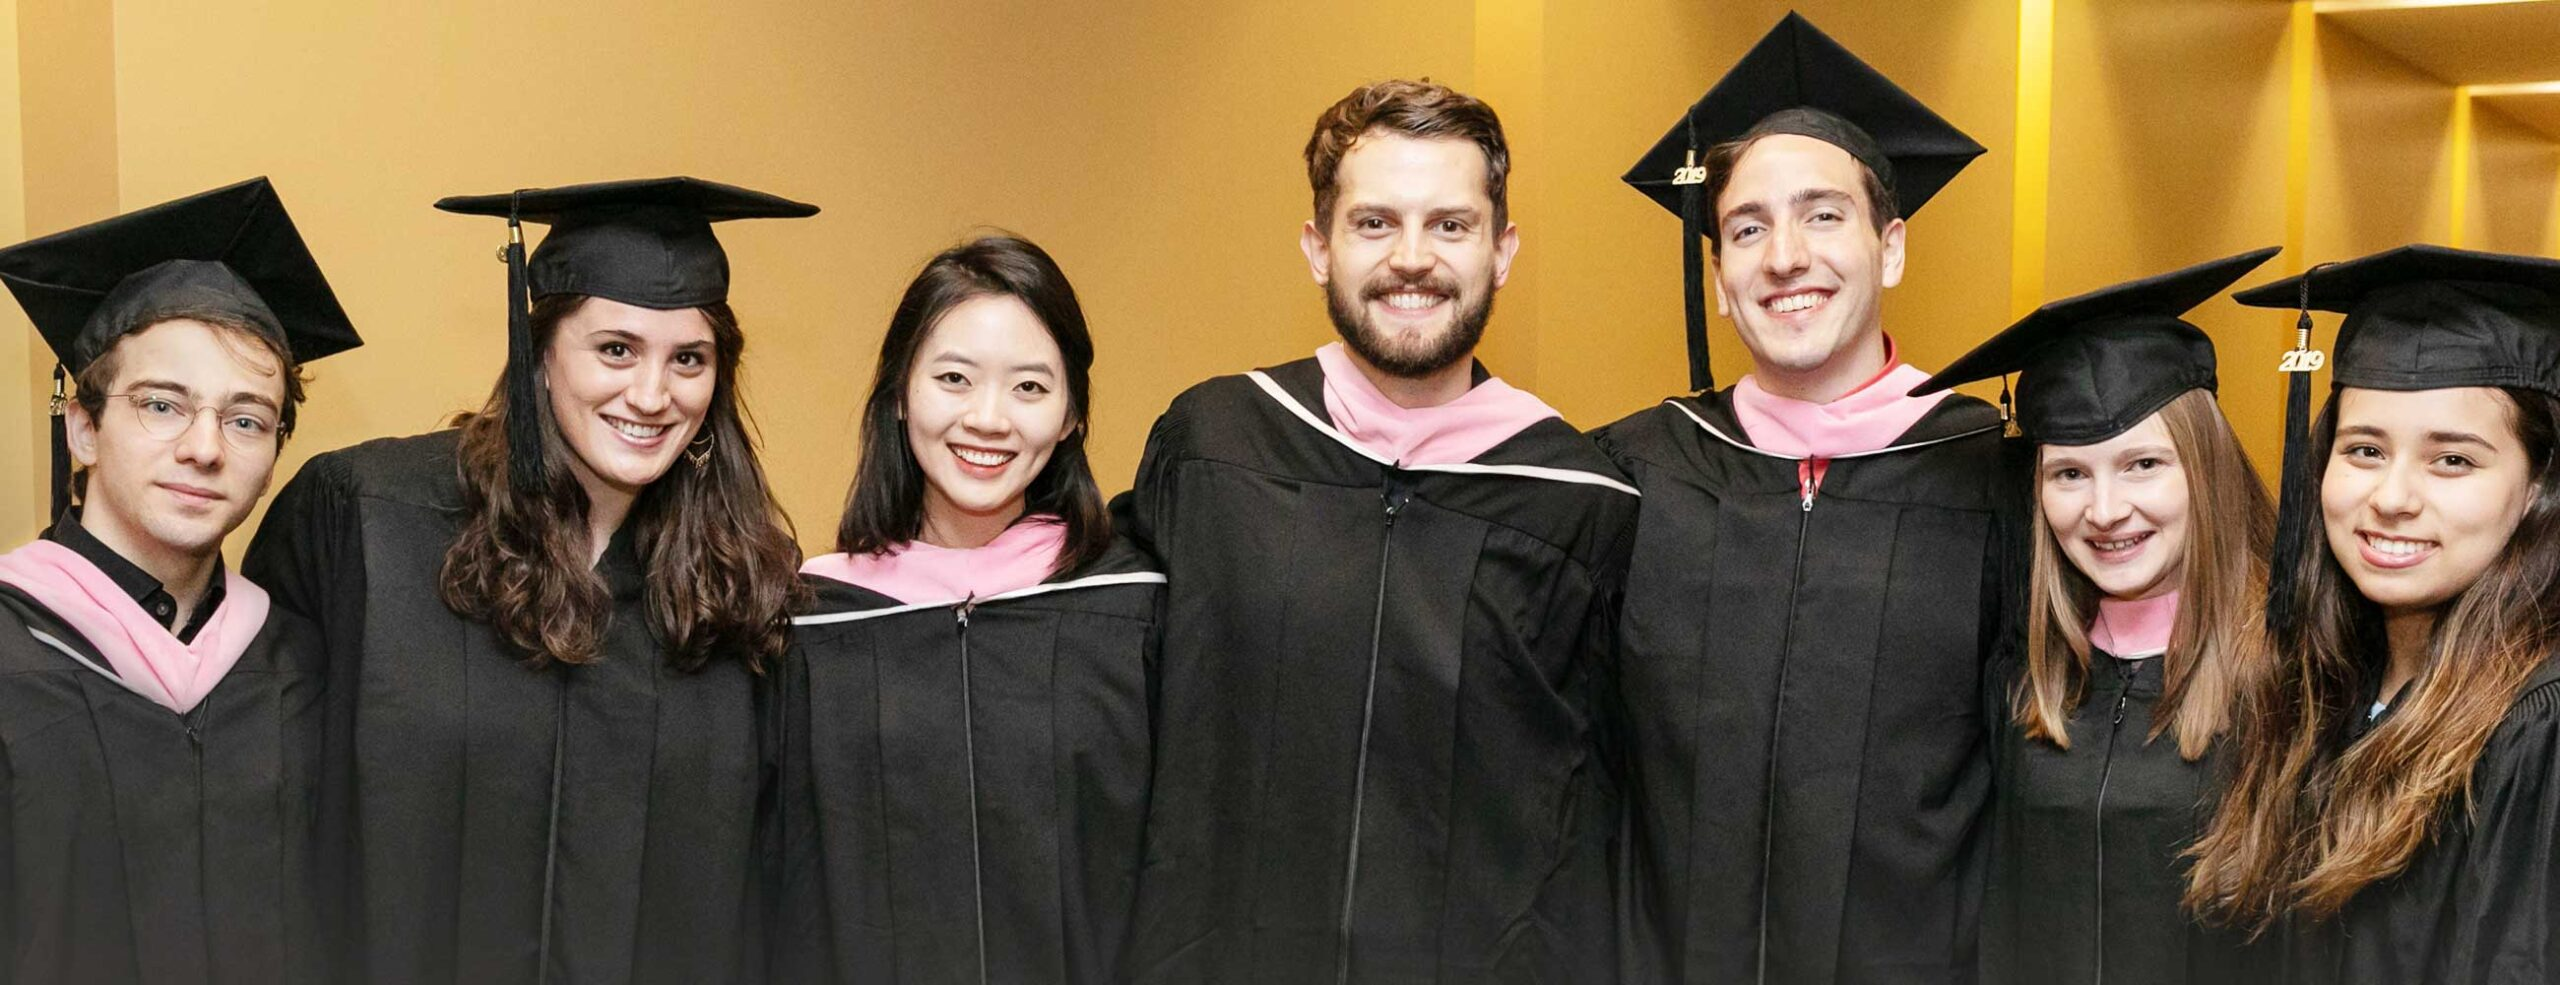 Conservatory students in caps and gowns